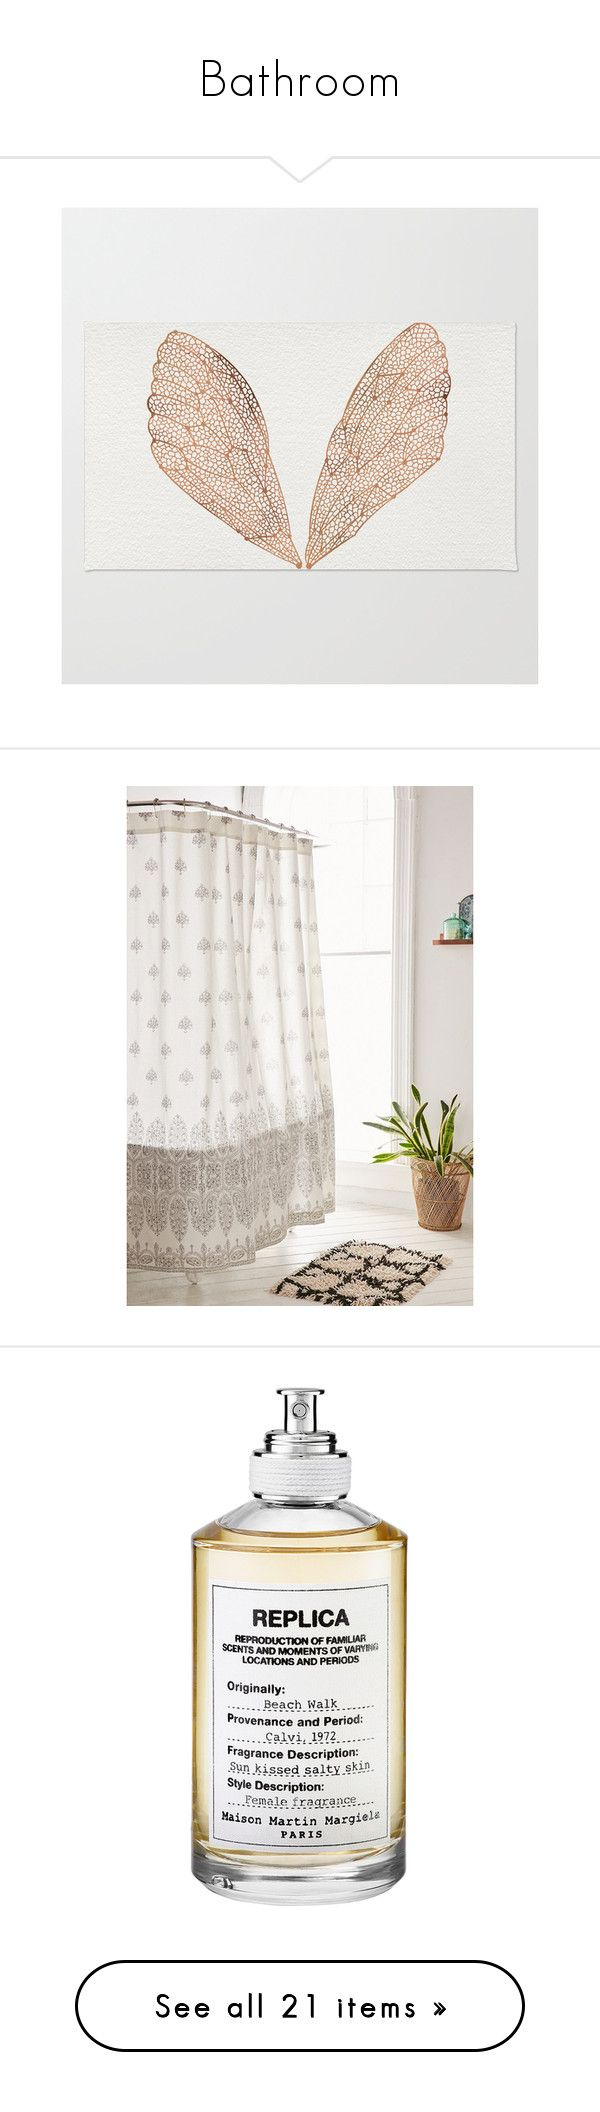 """""""Bathroom"""" by marinavl ❤ liked on Polyvore featuring home, rugs, machine wash rugs, zigzag rug, chevron area rug, patterned rugs, non skid area rugs, bed & bath, bath and shower curtains"""